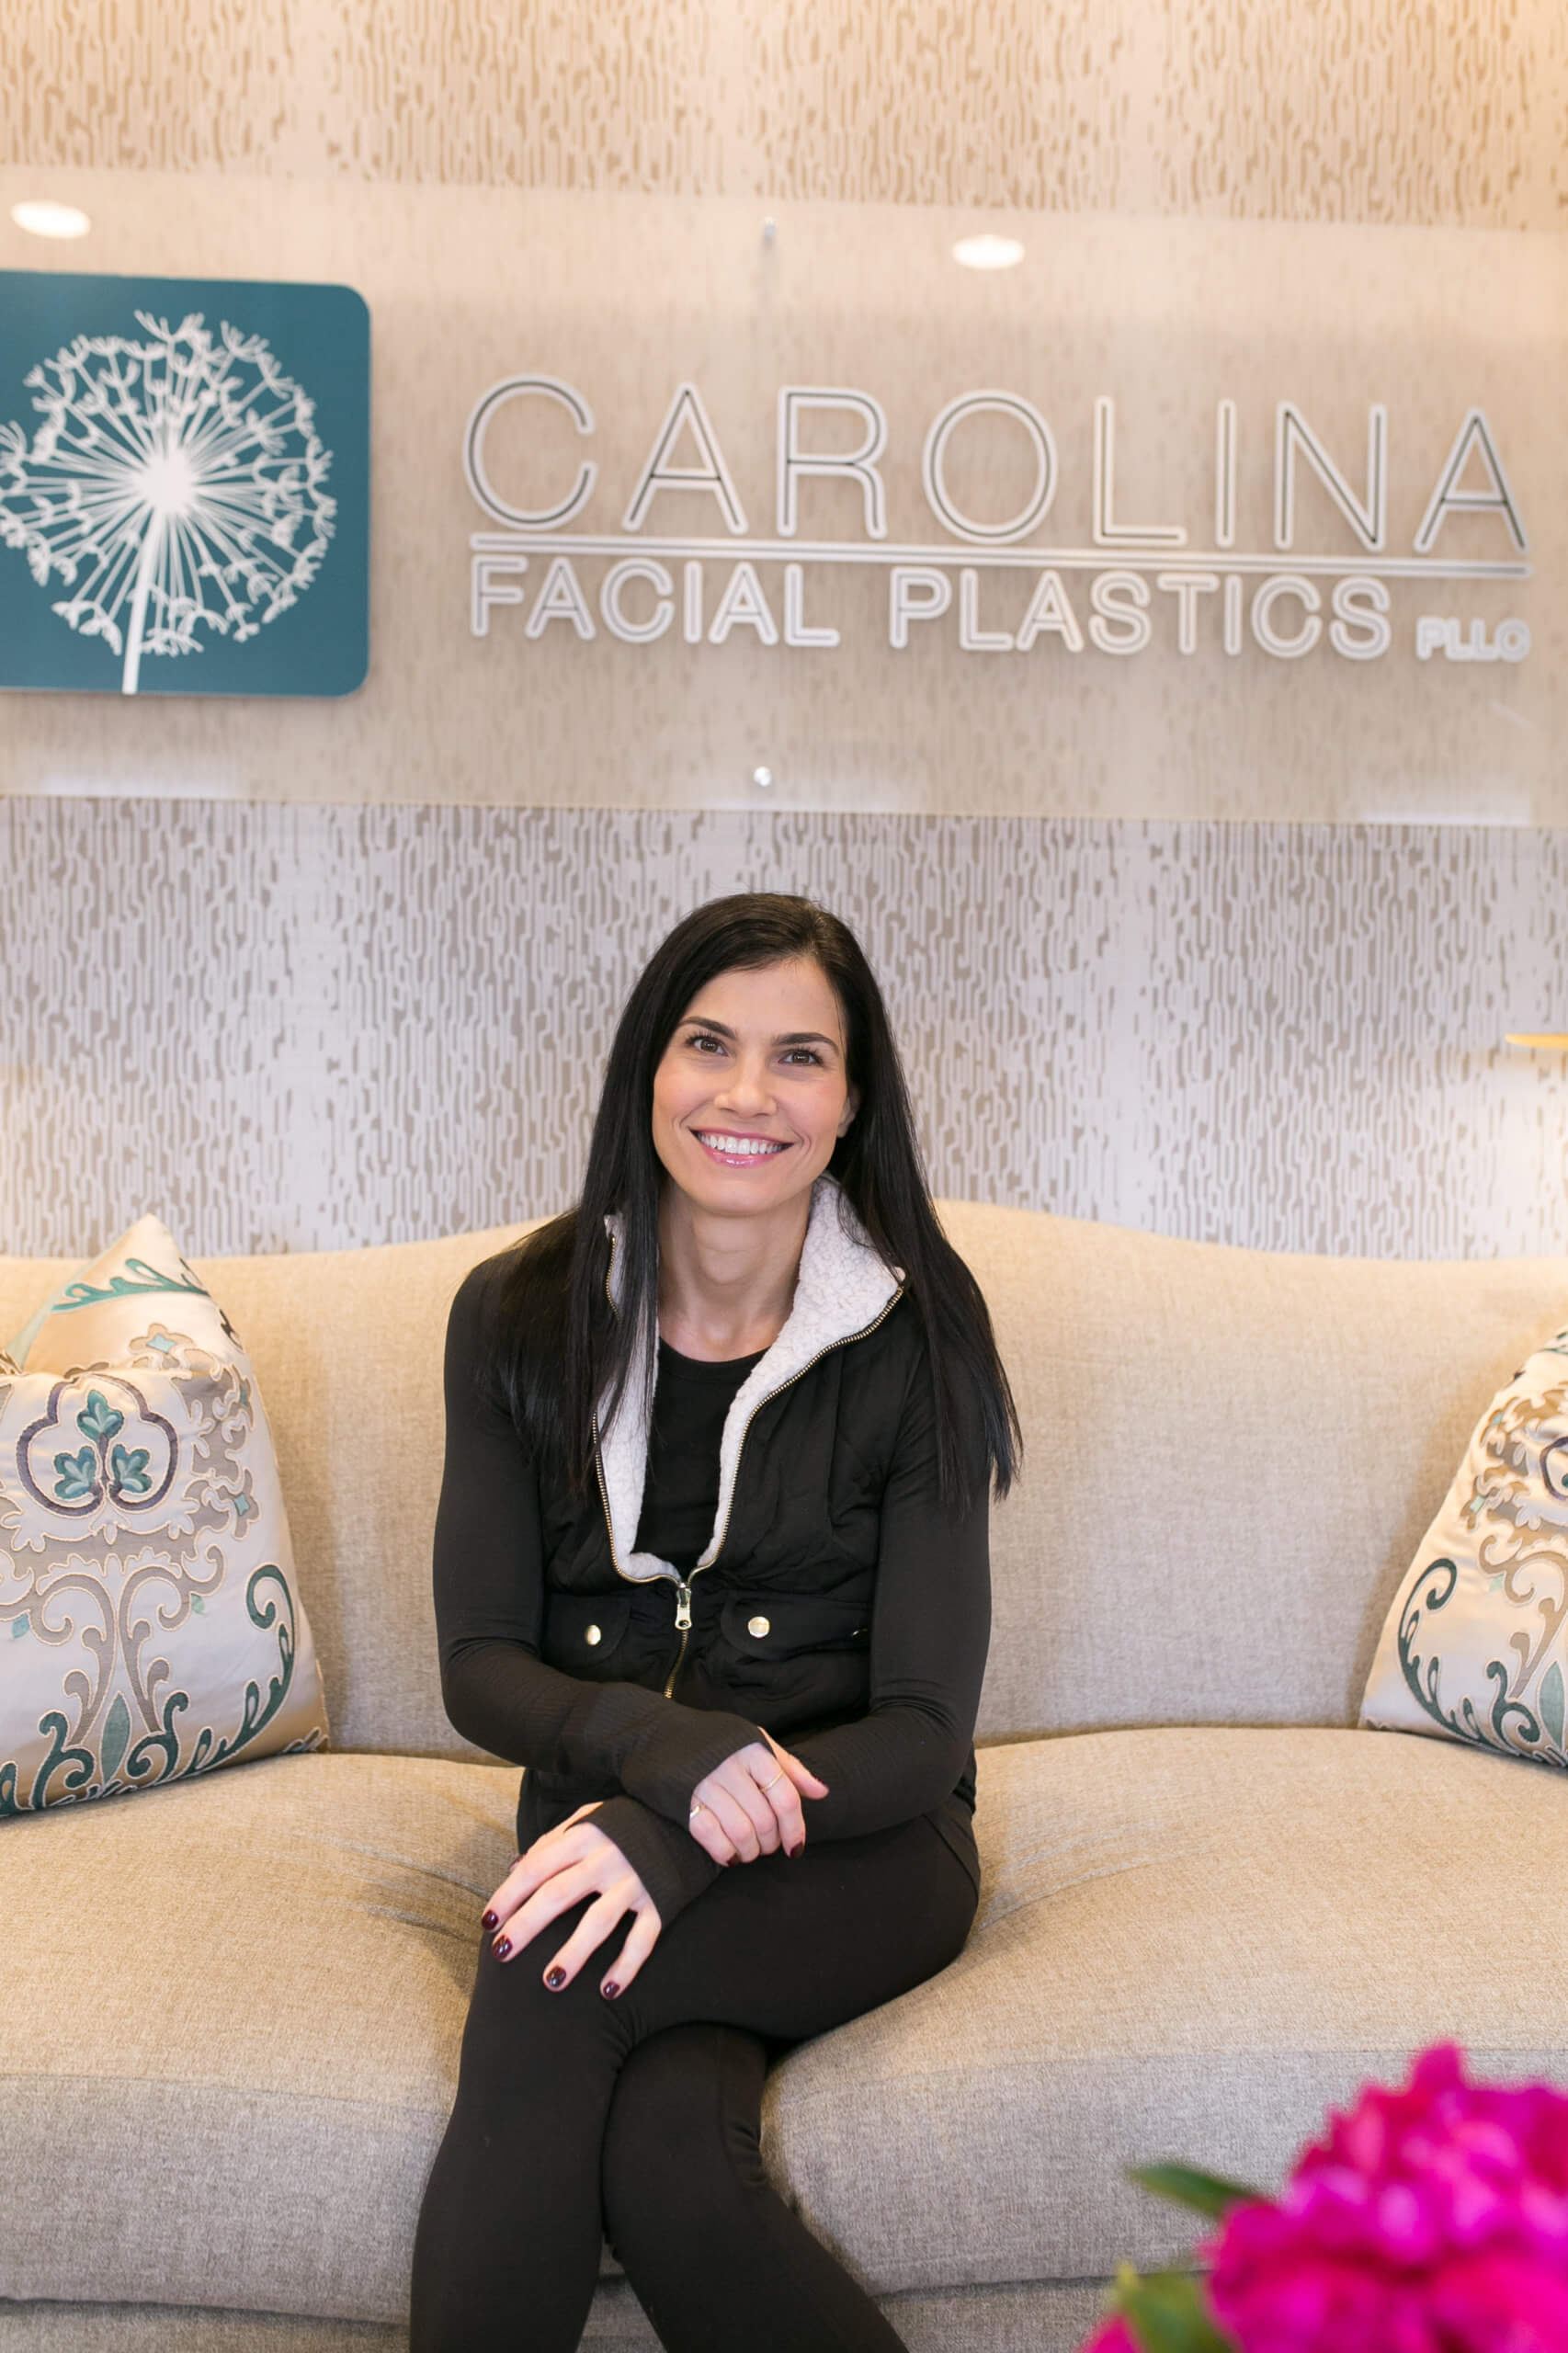 skincare at Carolina facial plastics